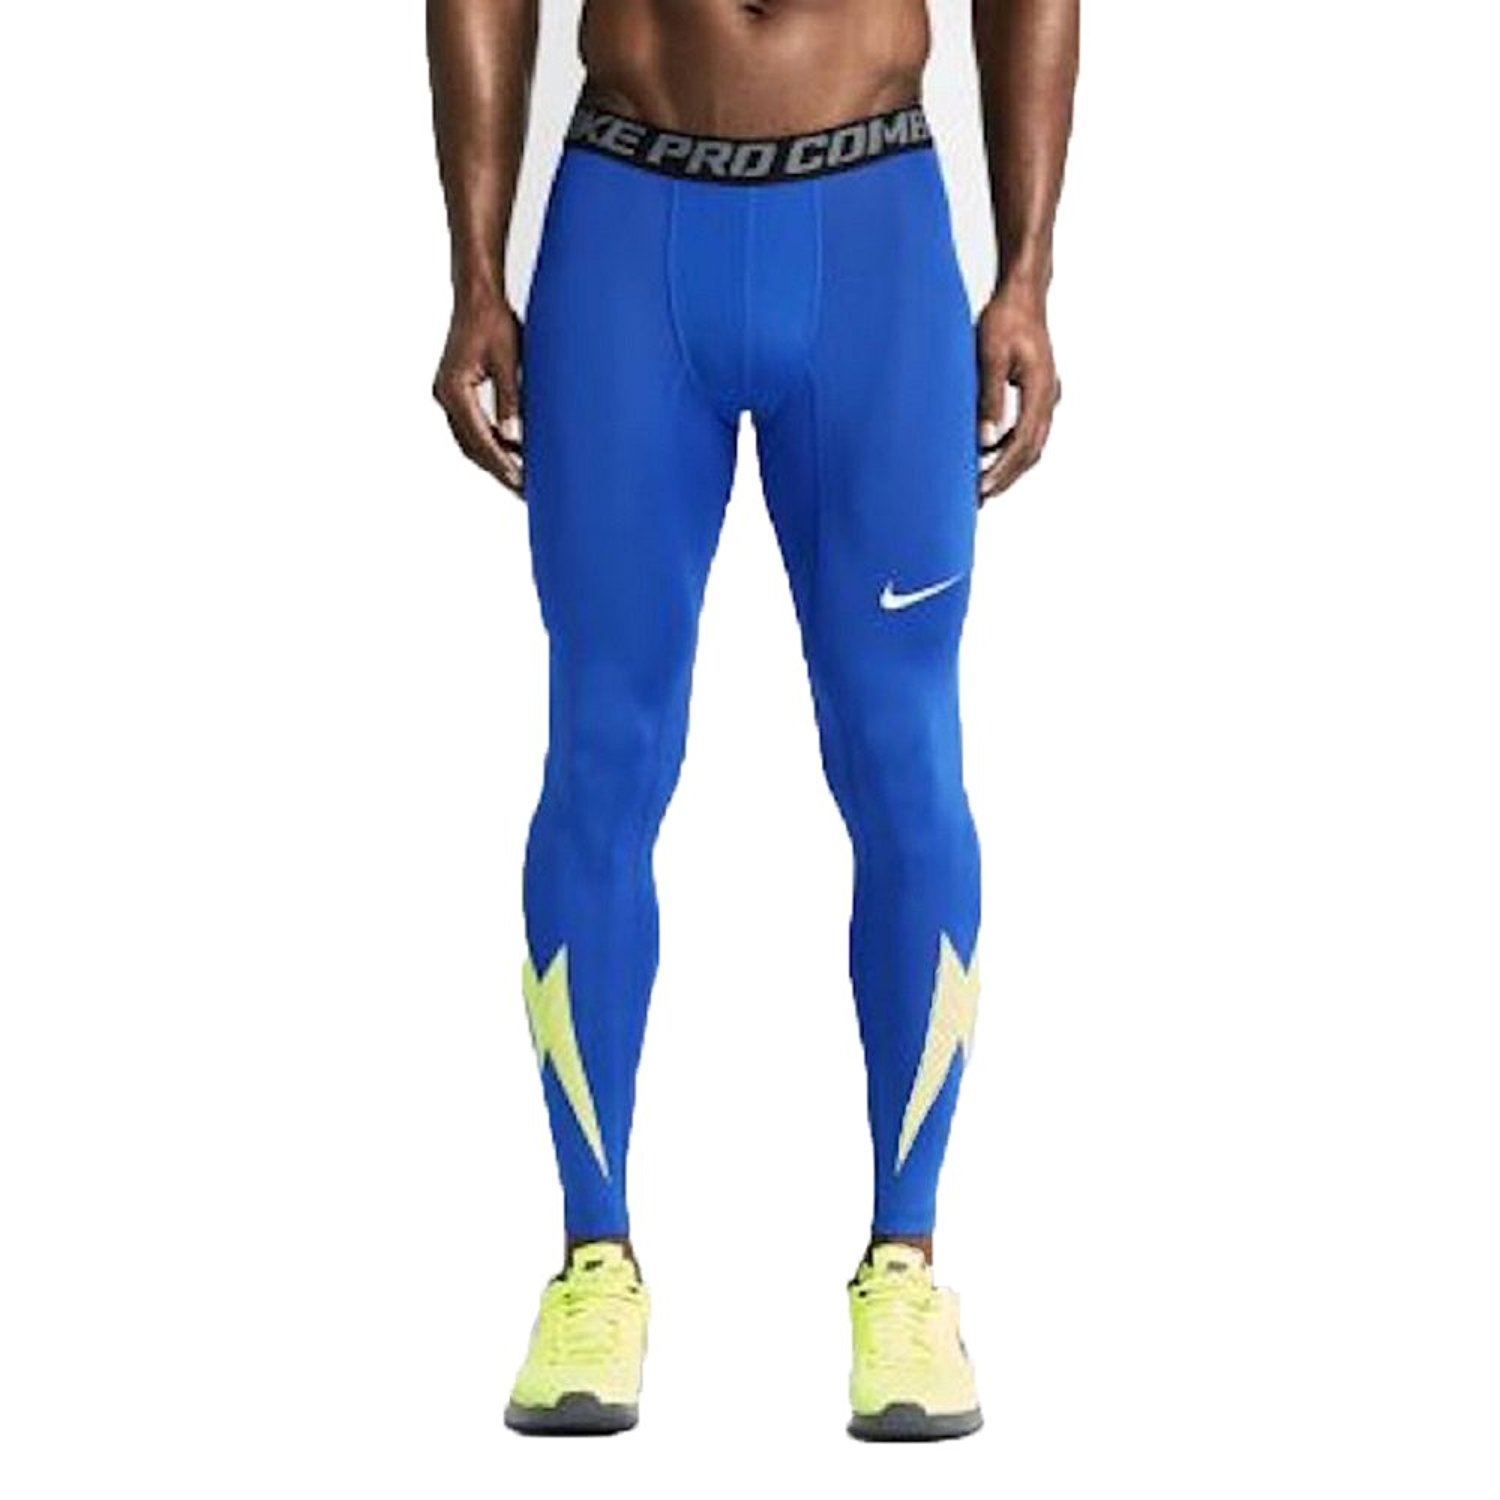 86dbce514d Get Quotations · Nike Men's Pro Combat Compression Printed Football  Training Tights